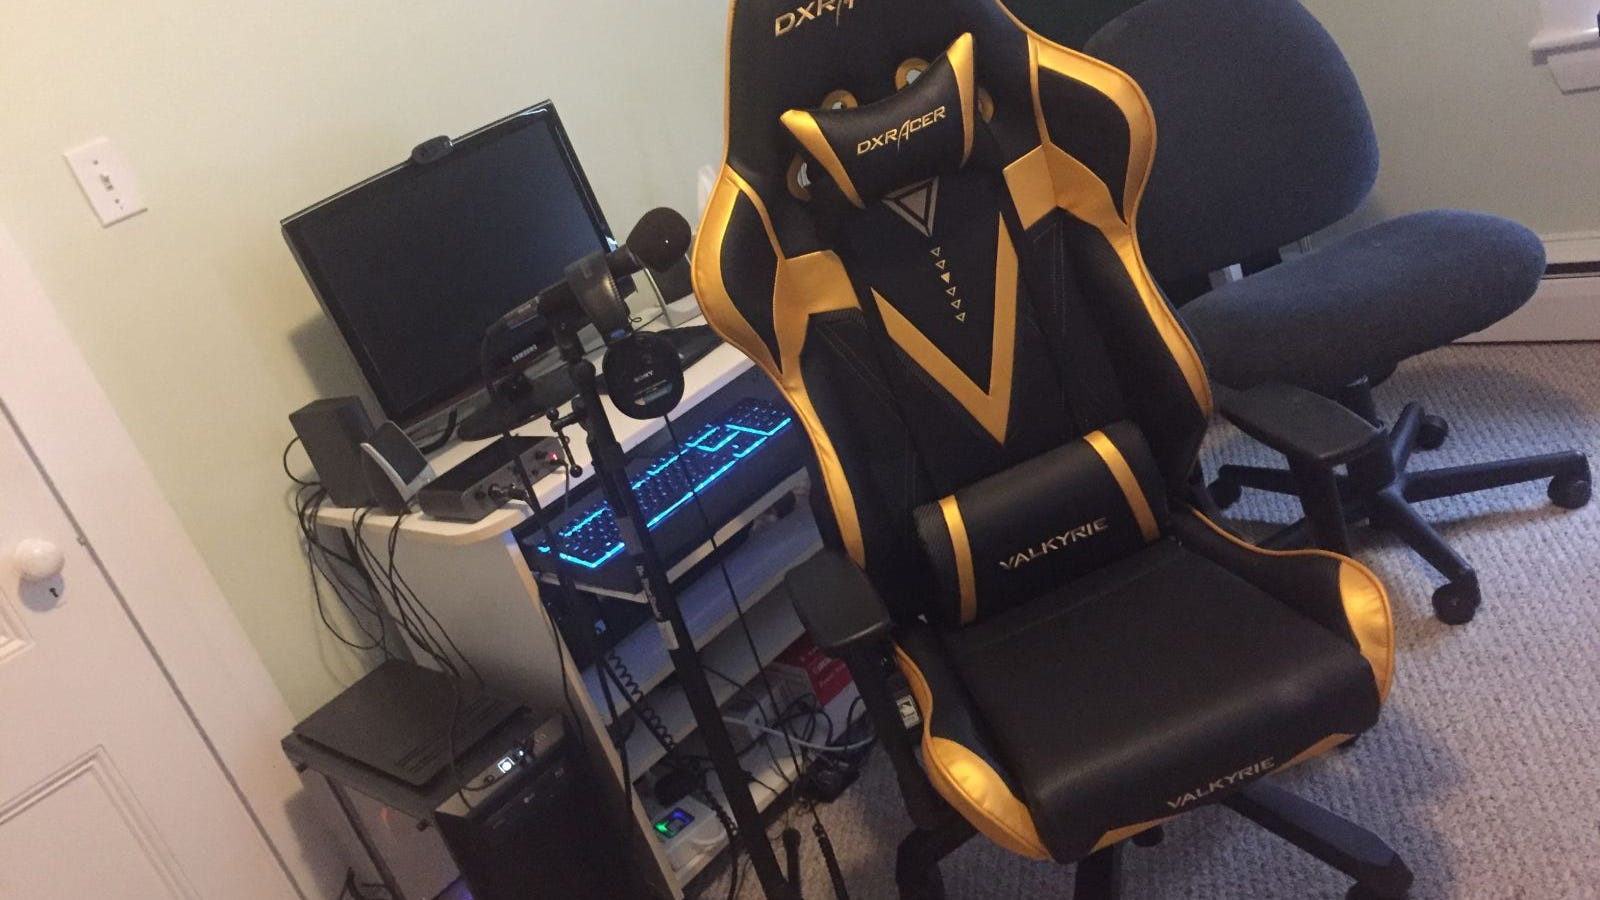 My Hideous, Comfortable Gamer Chair Fills Me With Existential Dread